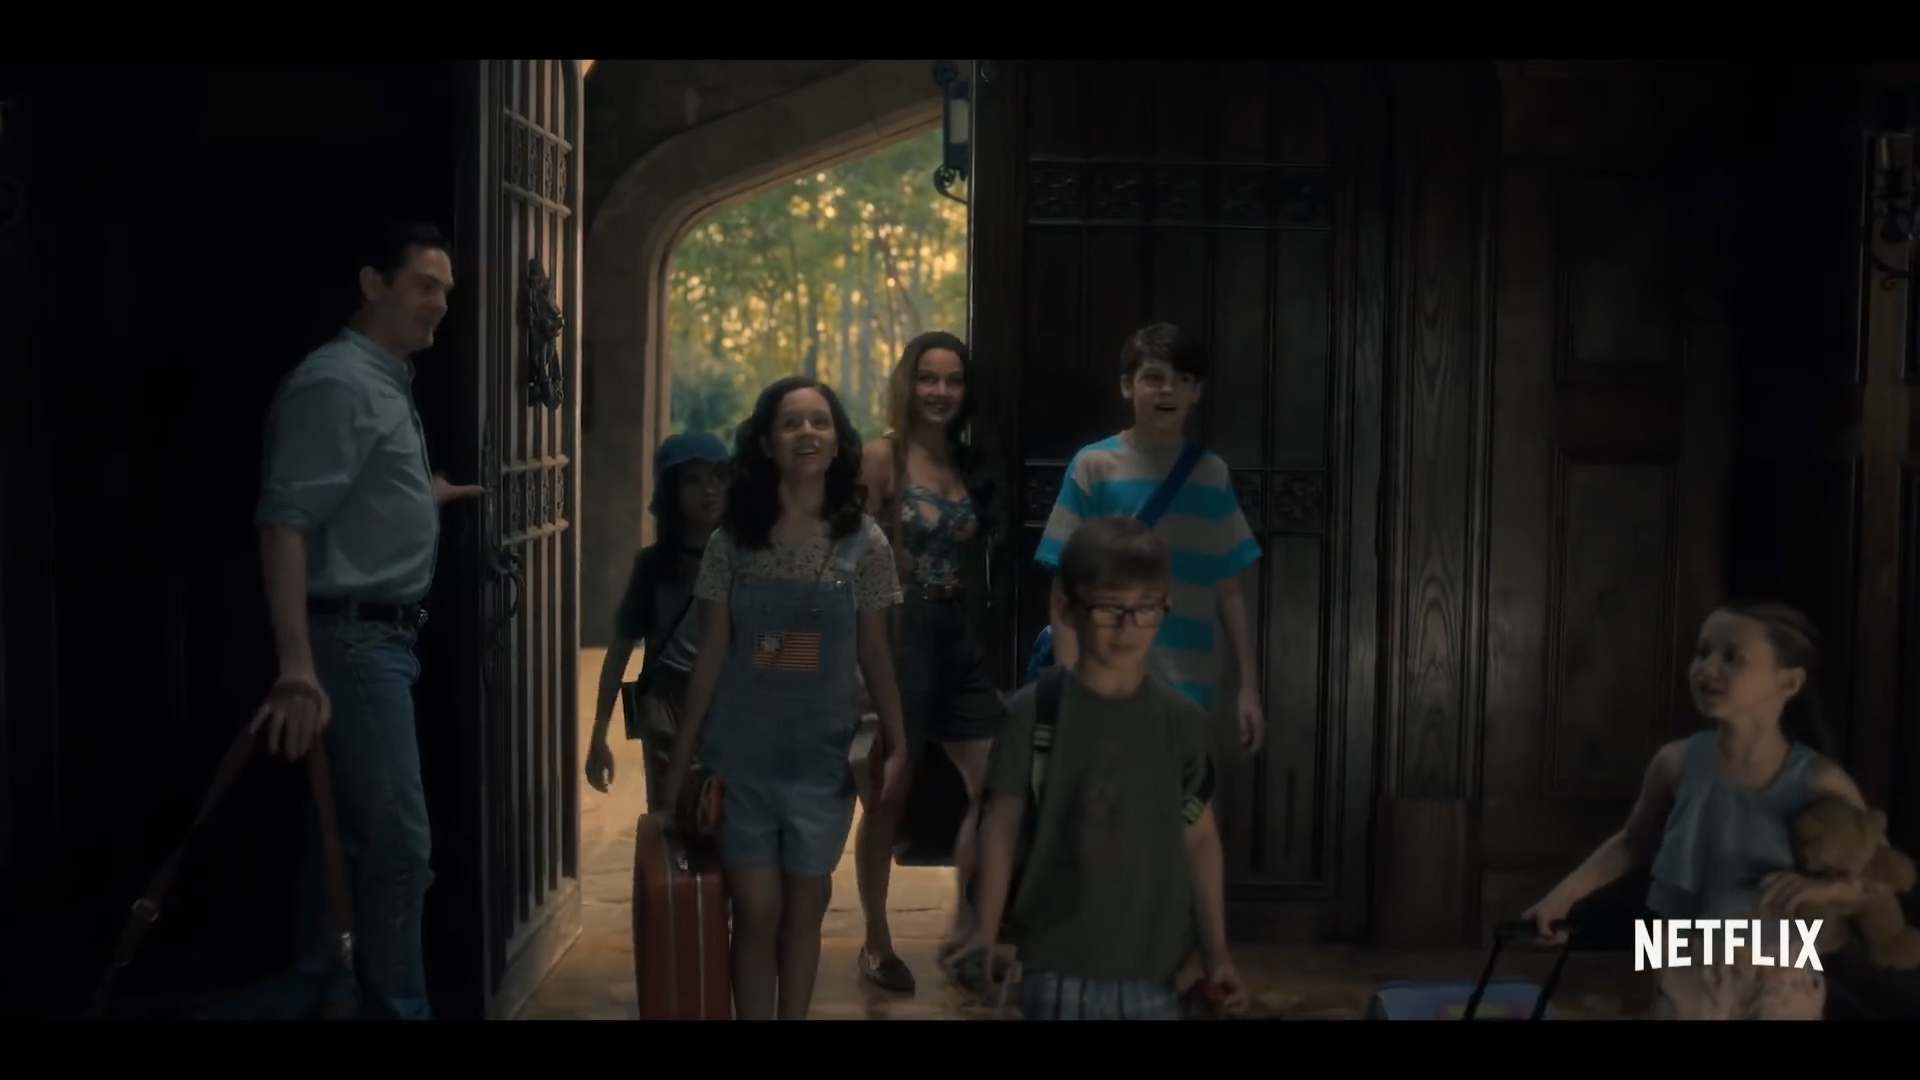 The Haunting of Hill House S1 - Official Trailer